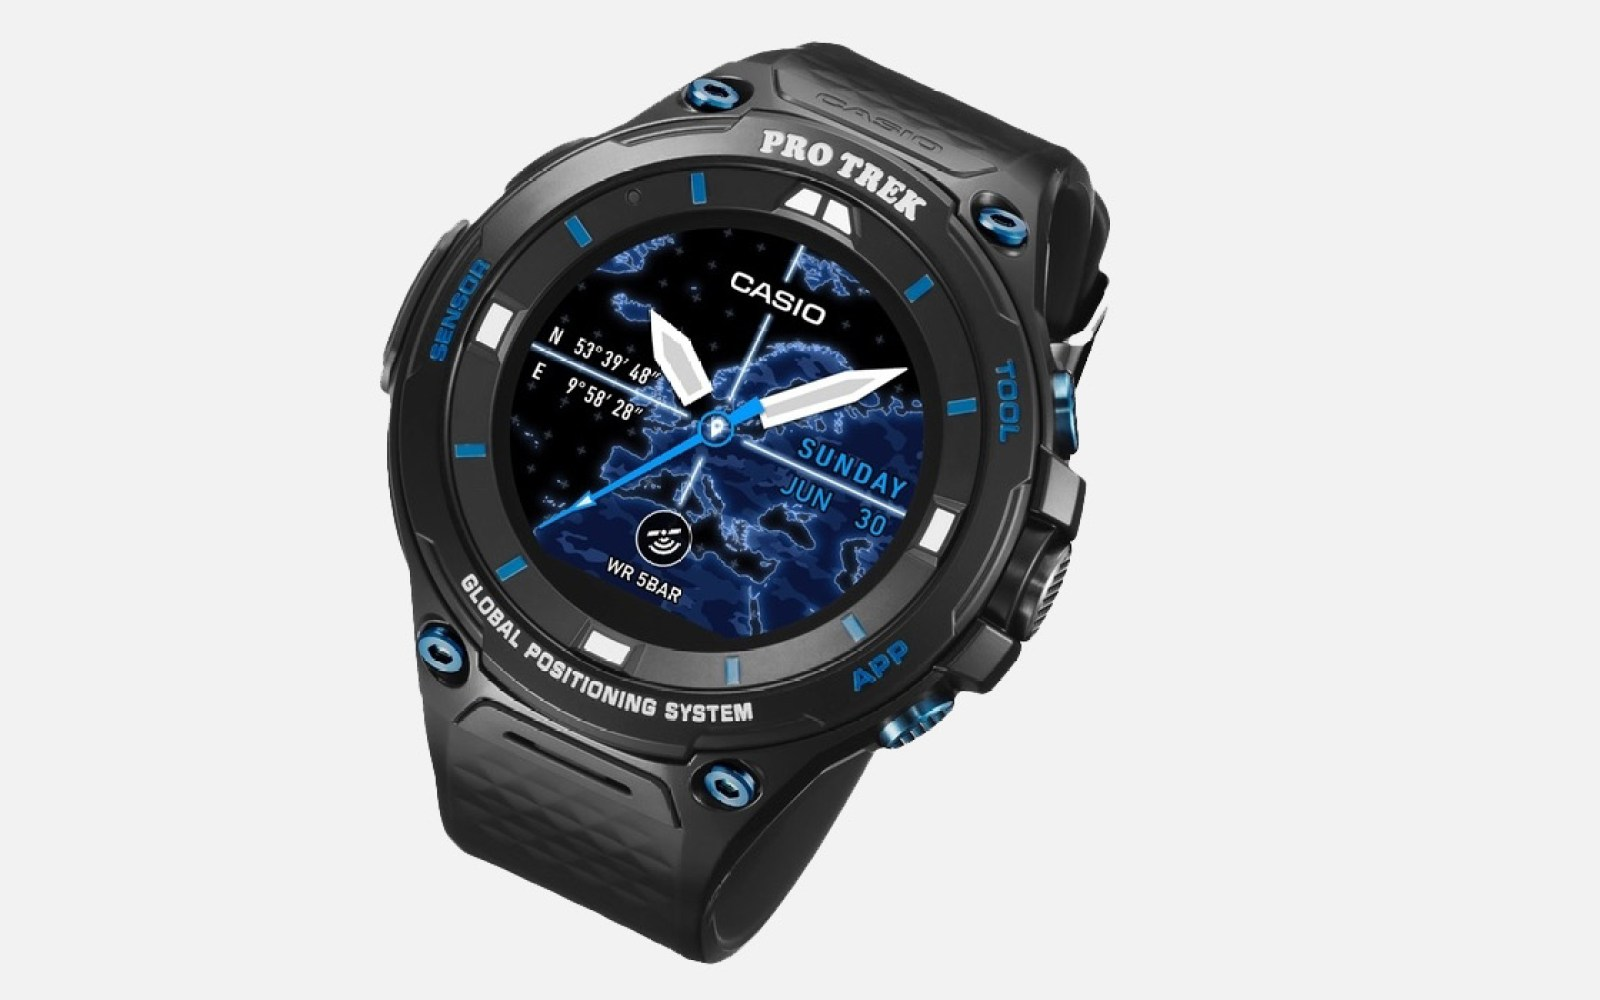 Casio's Pro-Trek WSD-F20S adds a sapphire display and blue color to the sporty Android Wear 2.0 watch